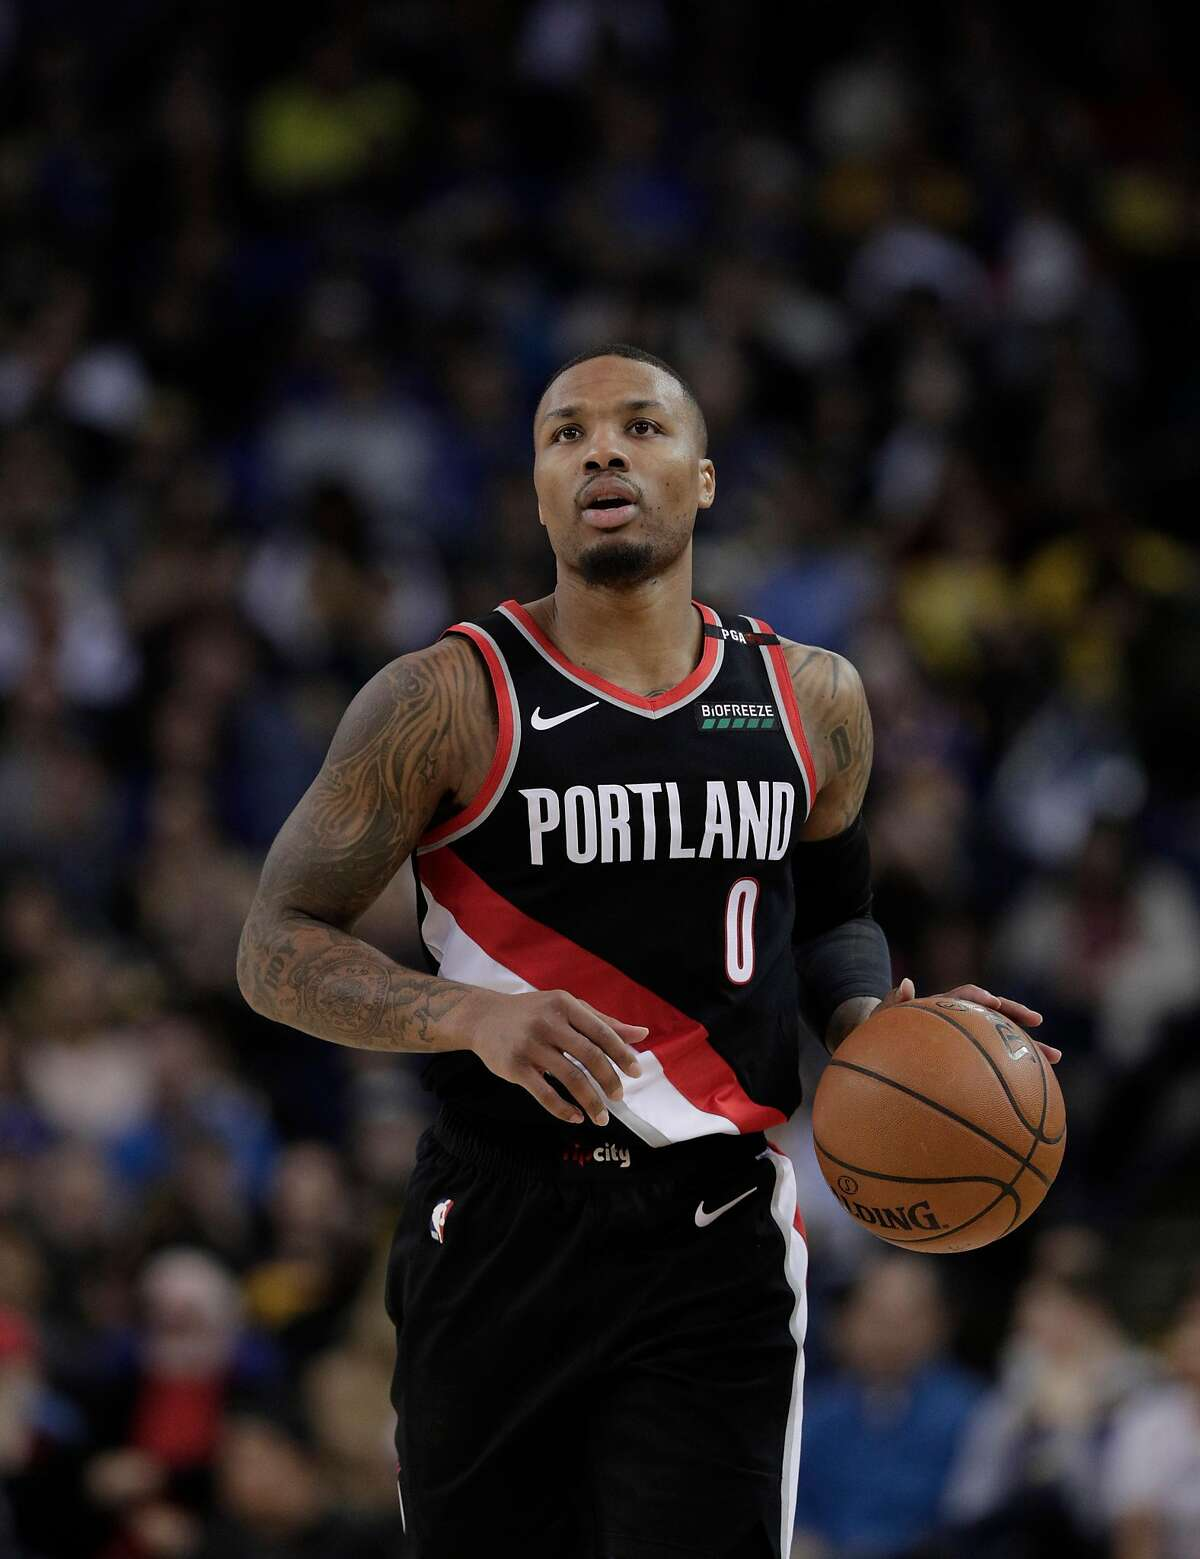 Damian Lillard (0) dribbles up the court in the first half as the Golden State Warriors played the Portland Trailblazers at Oracle Arena in Oakland, Calif., on Thursday, December 27, 2018.